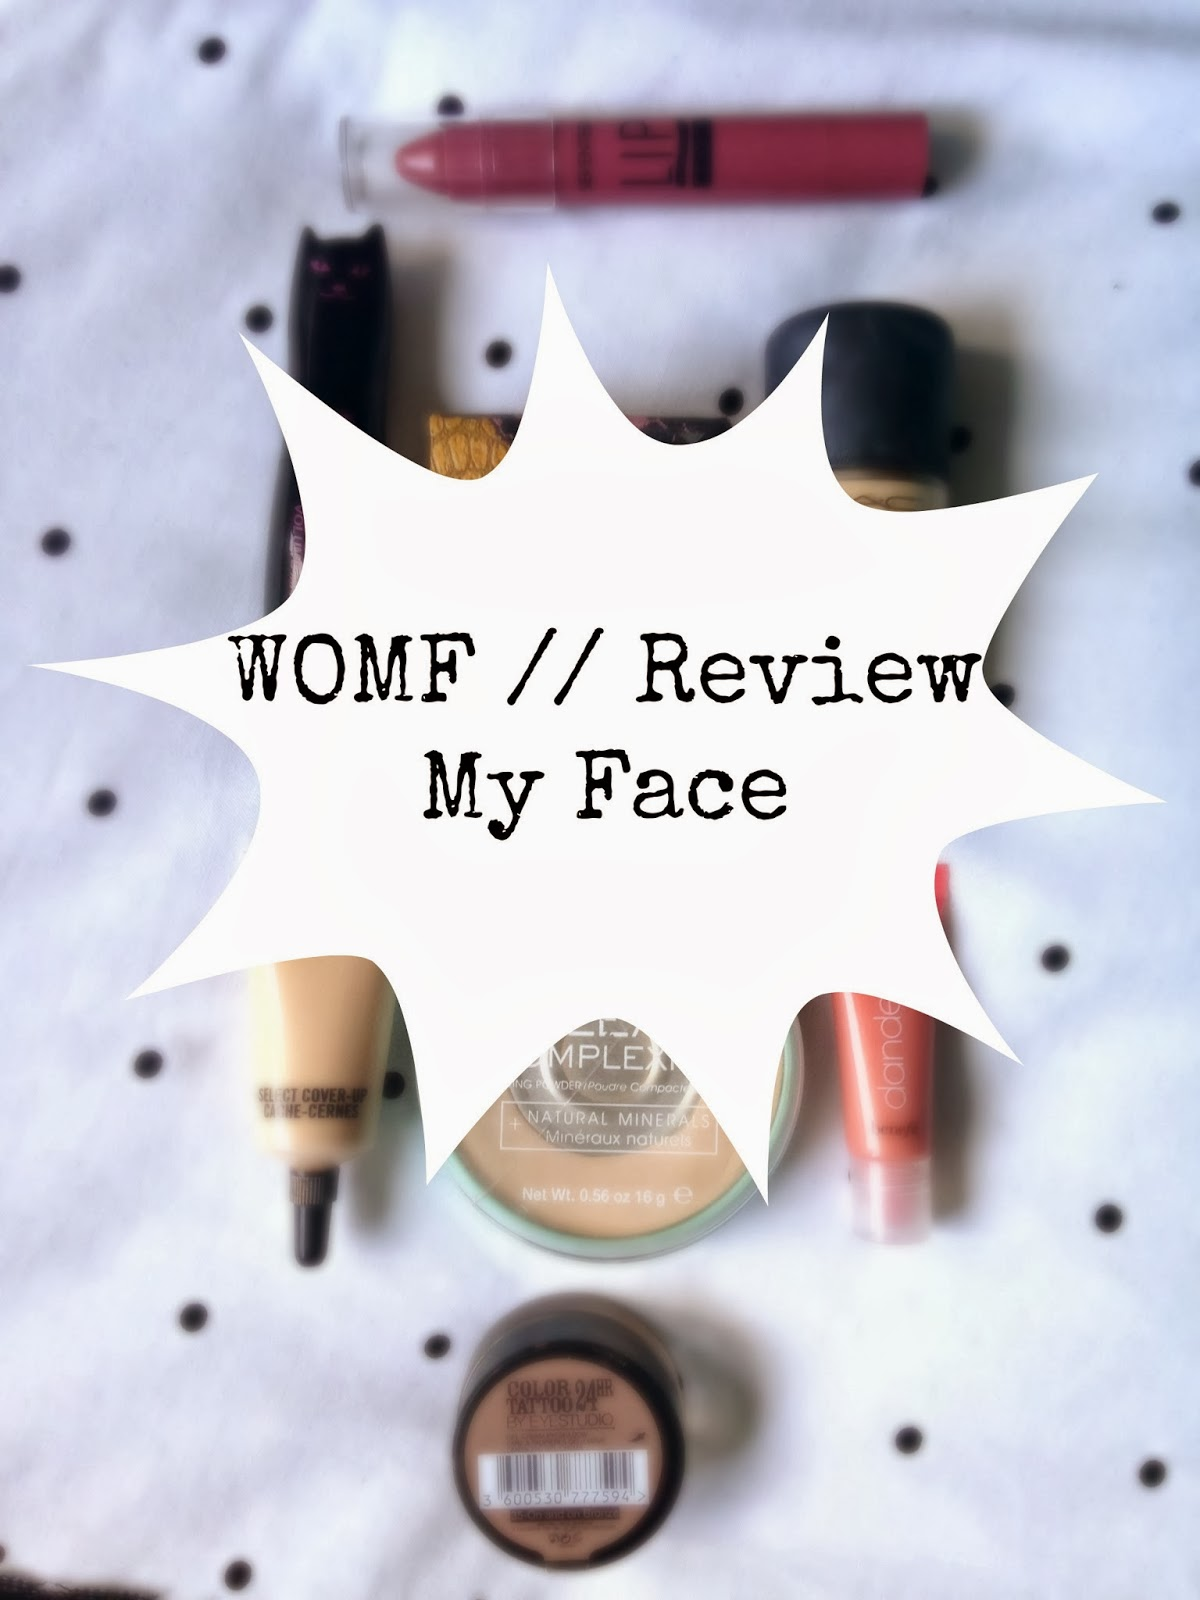 What's On My Face – Review My Face